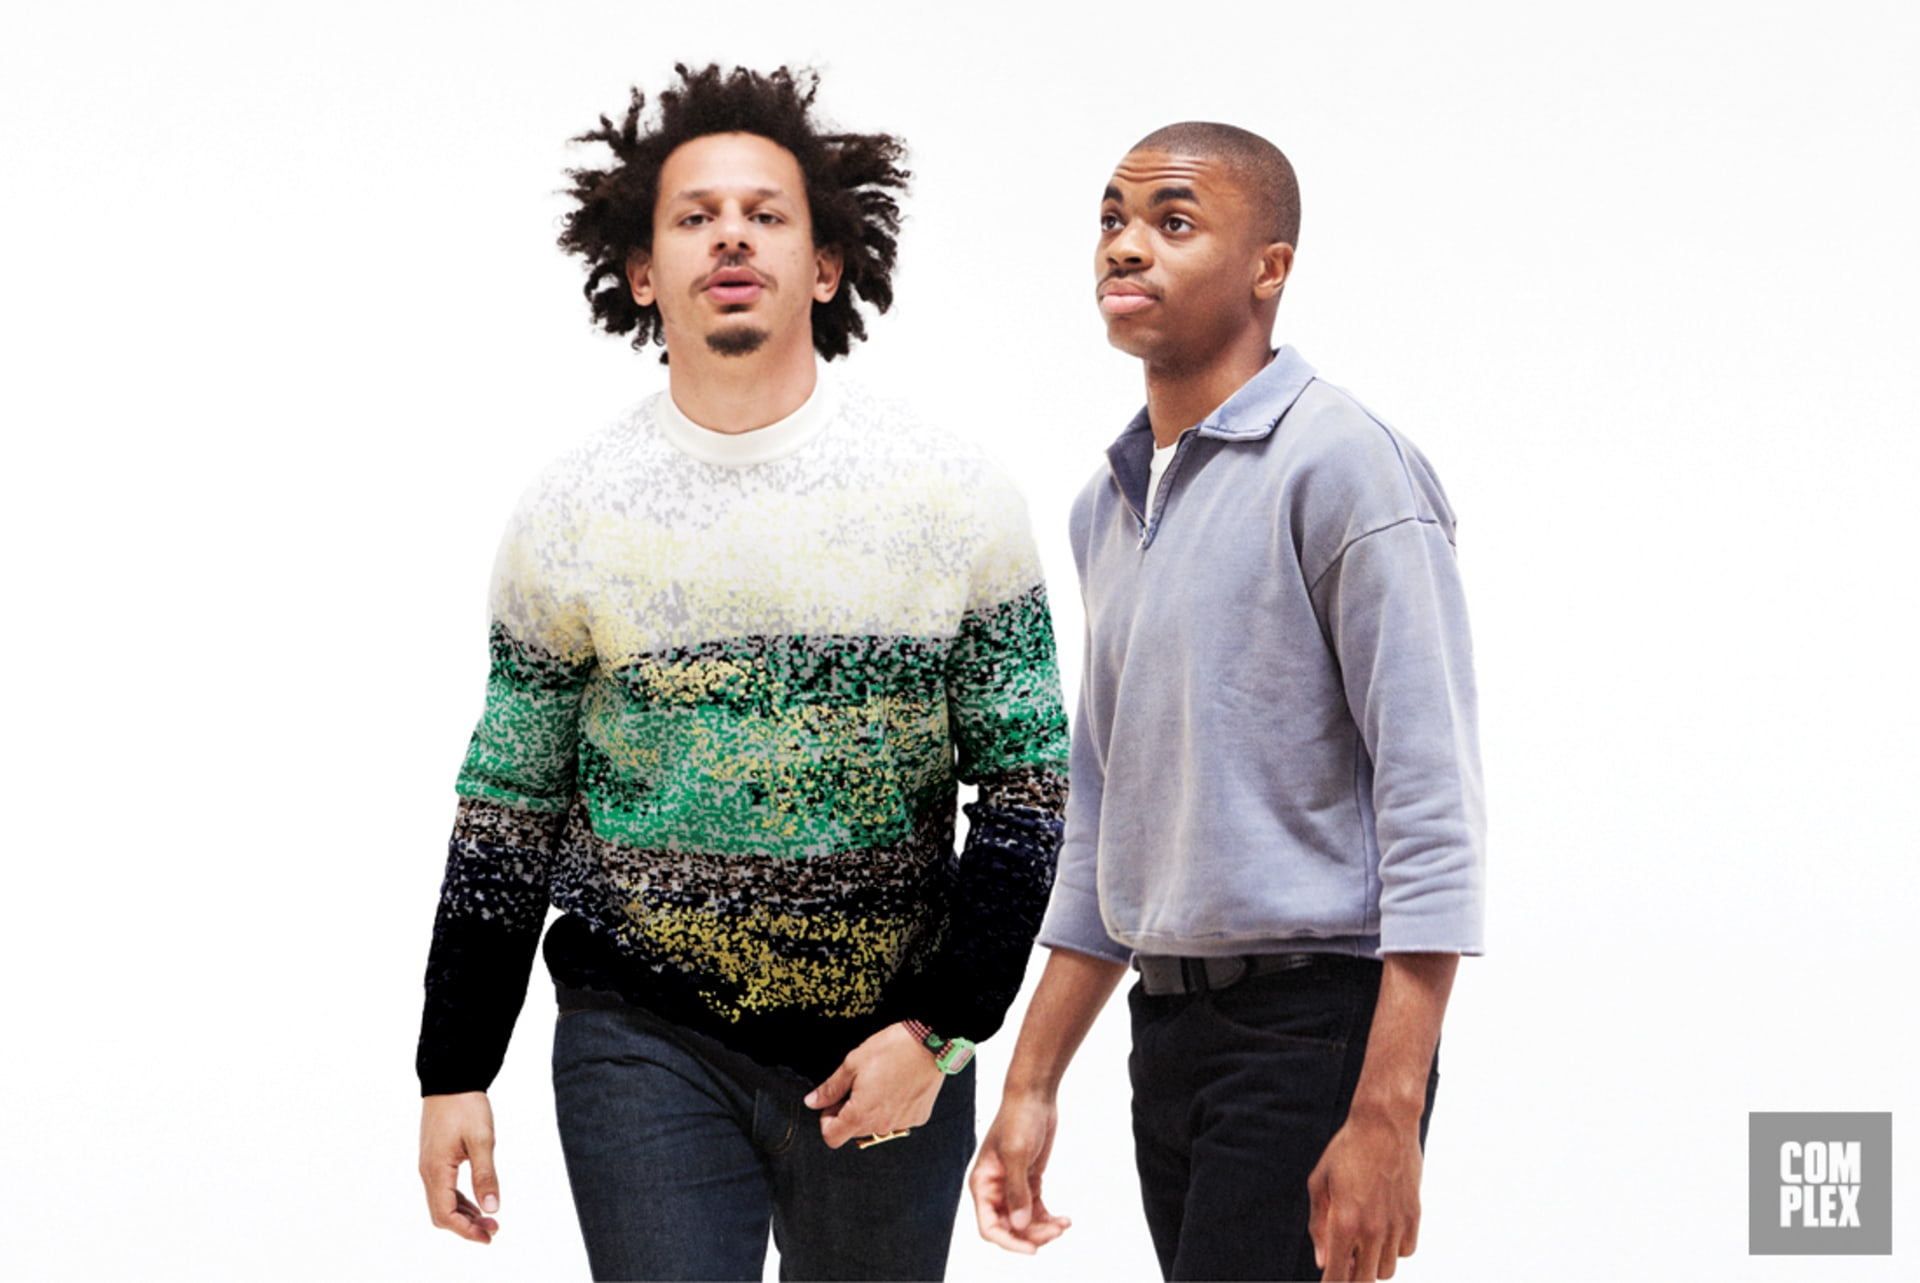 Eric André and Vince Staples